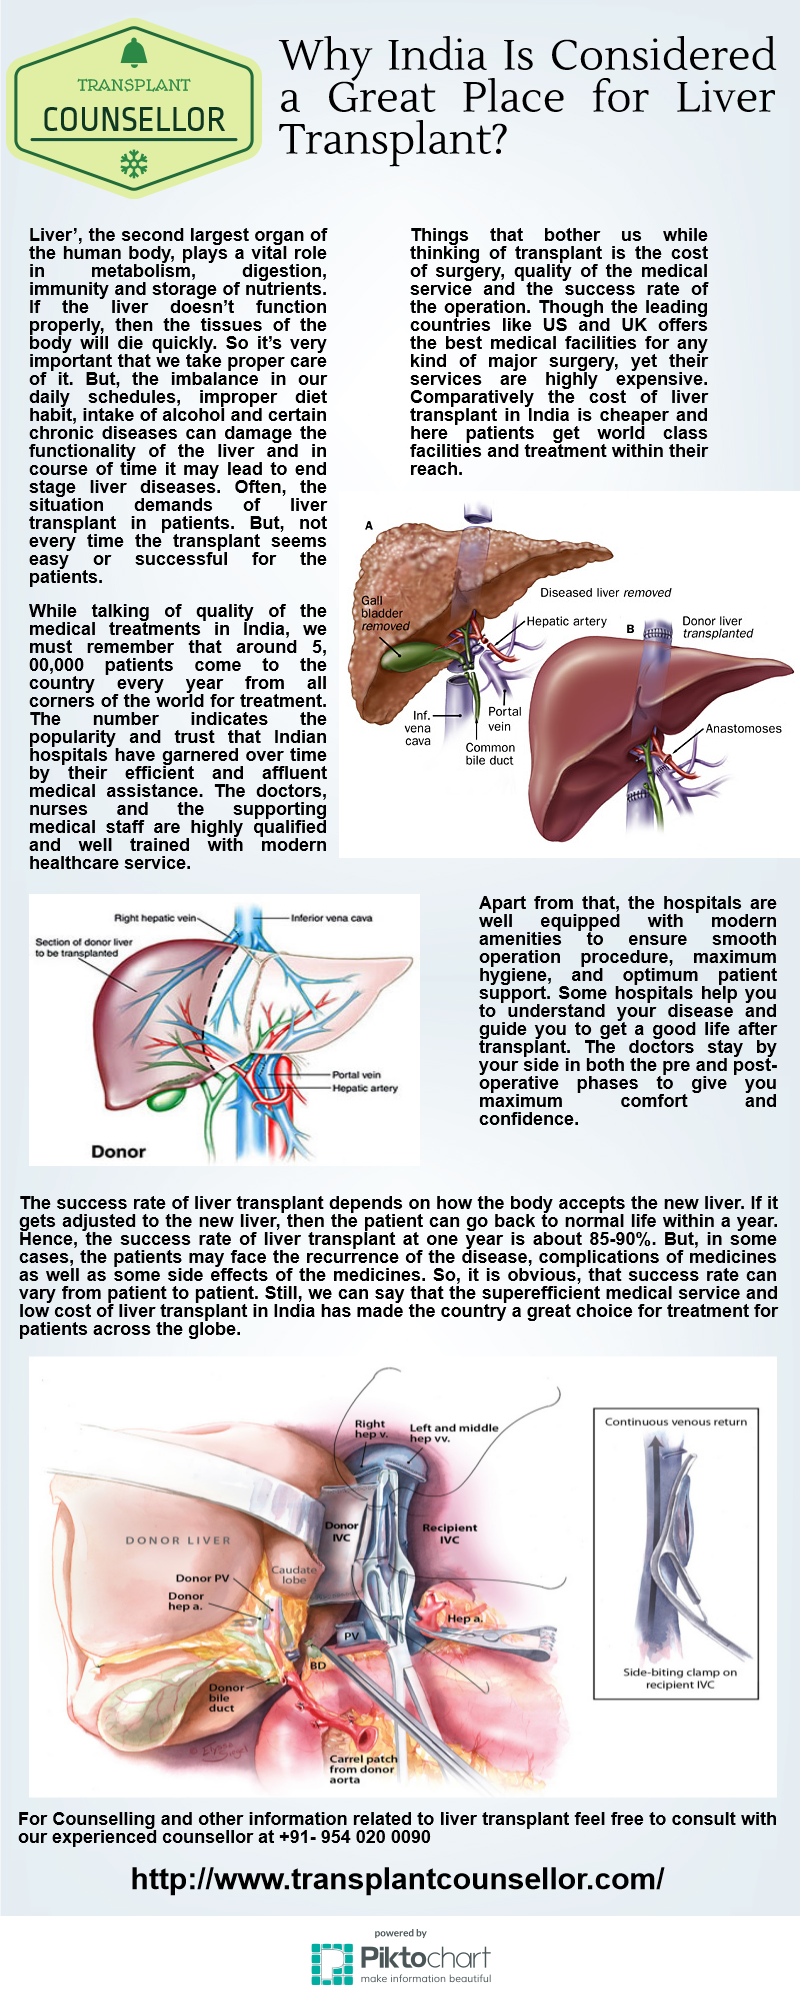 Liver The Second Largest Organ Of The Human Body Plays A Vital